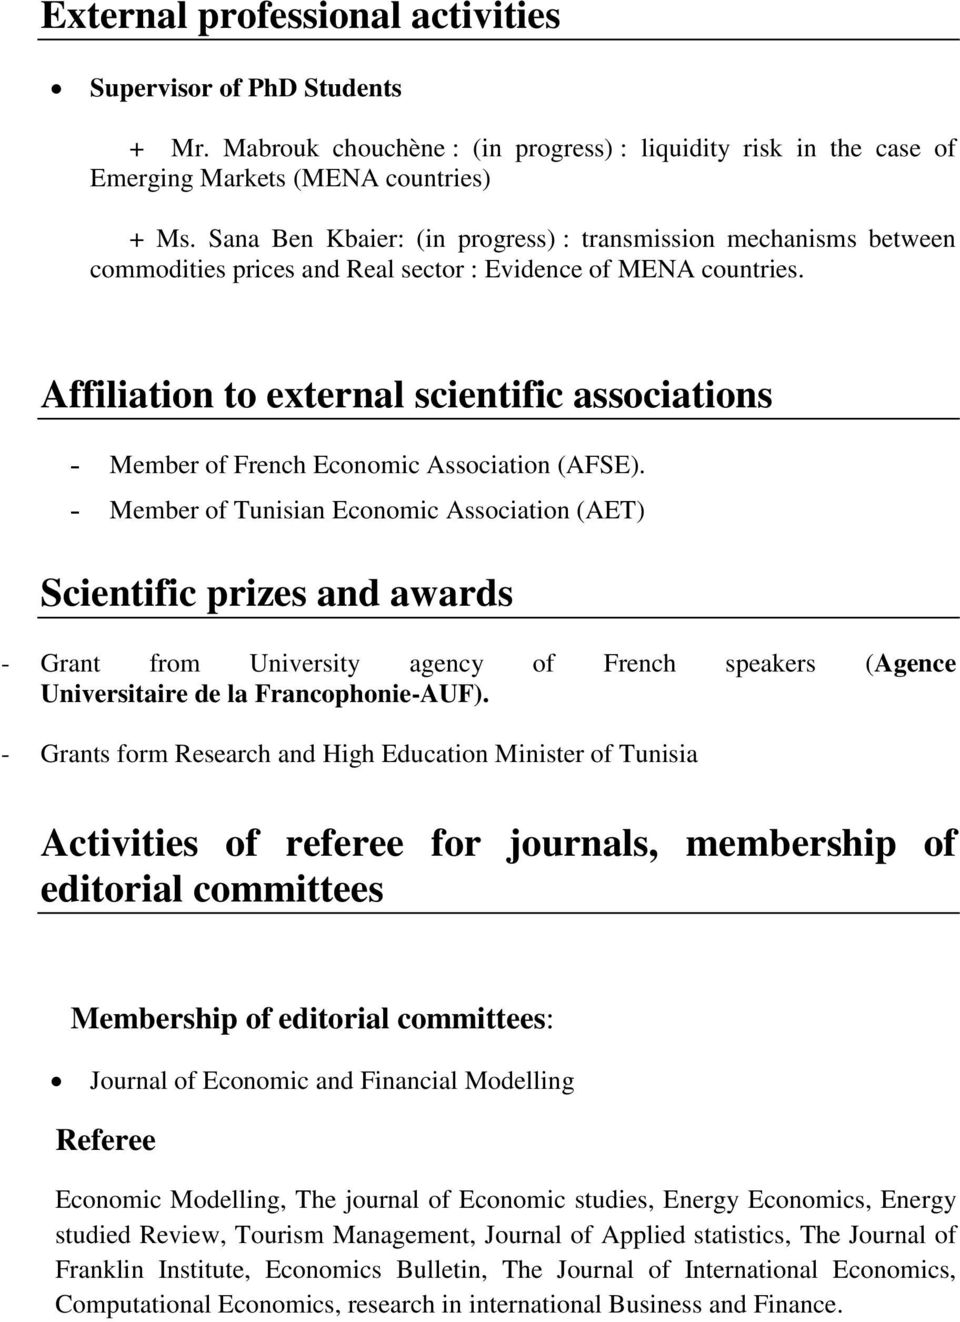 Affiliation to external scientific associations - Member of French Economic Association (AFSE).